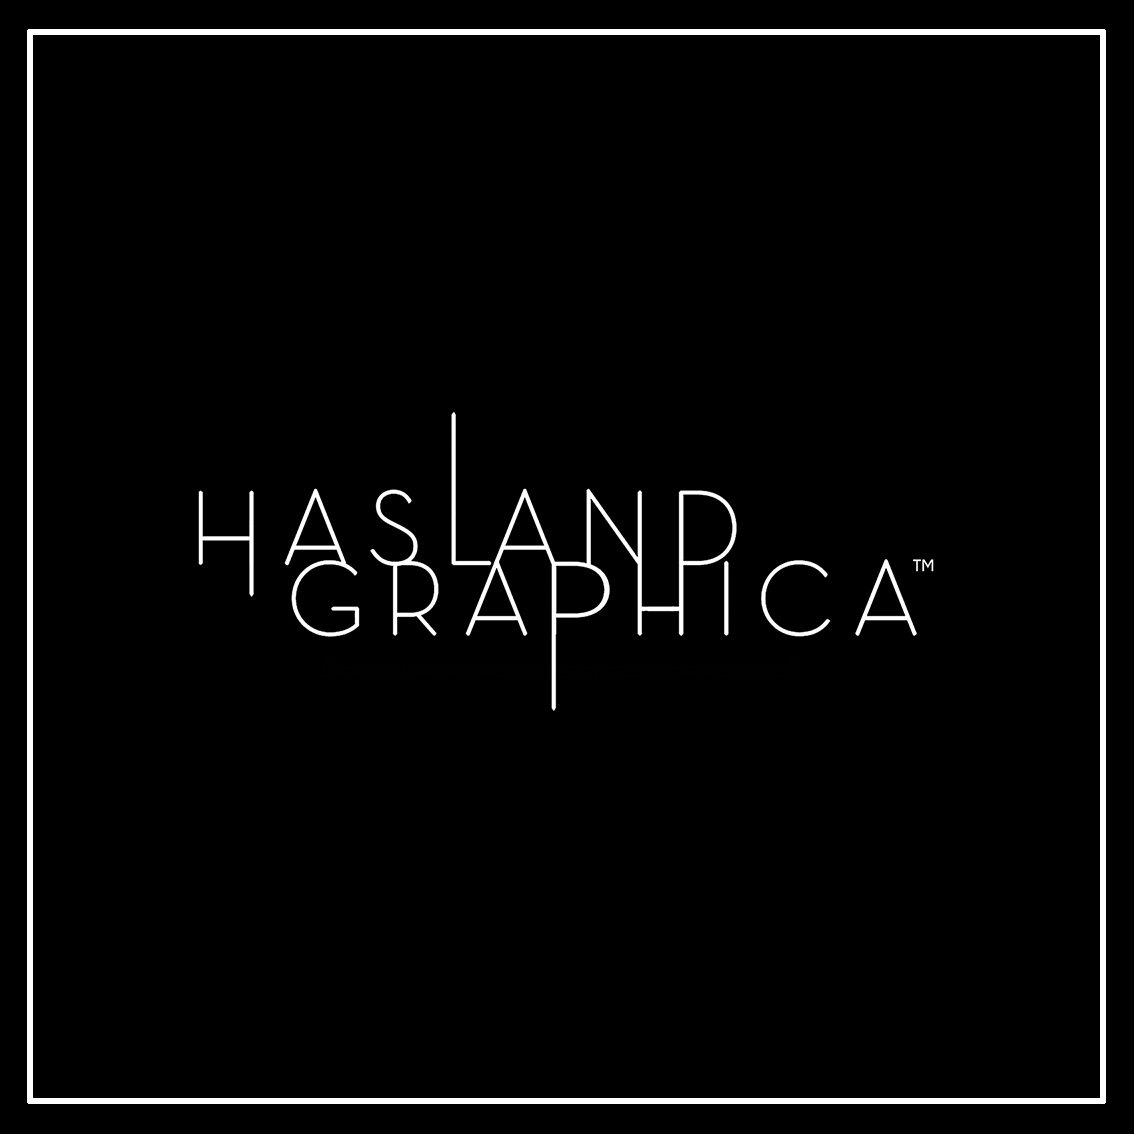 Hasland Graphica